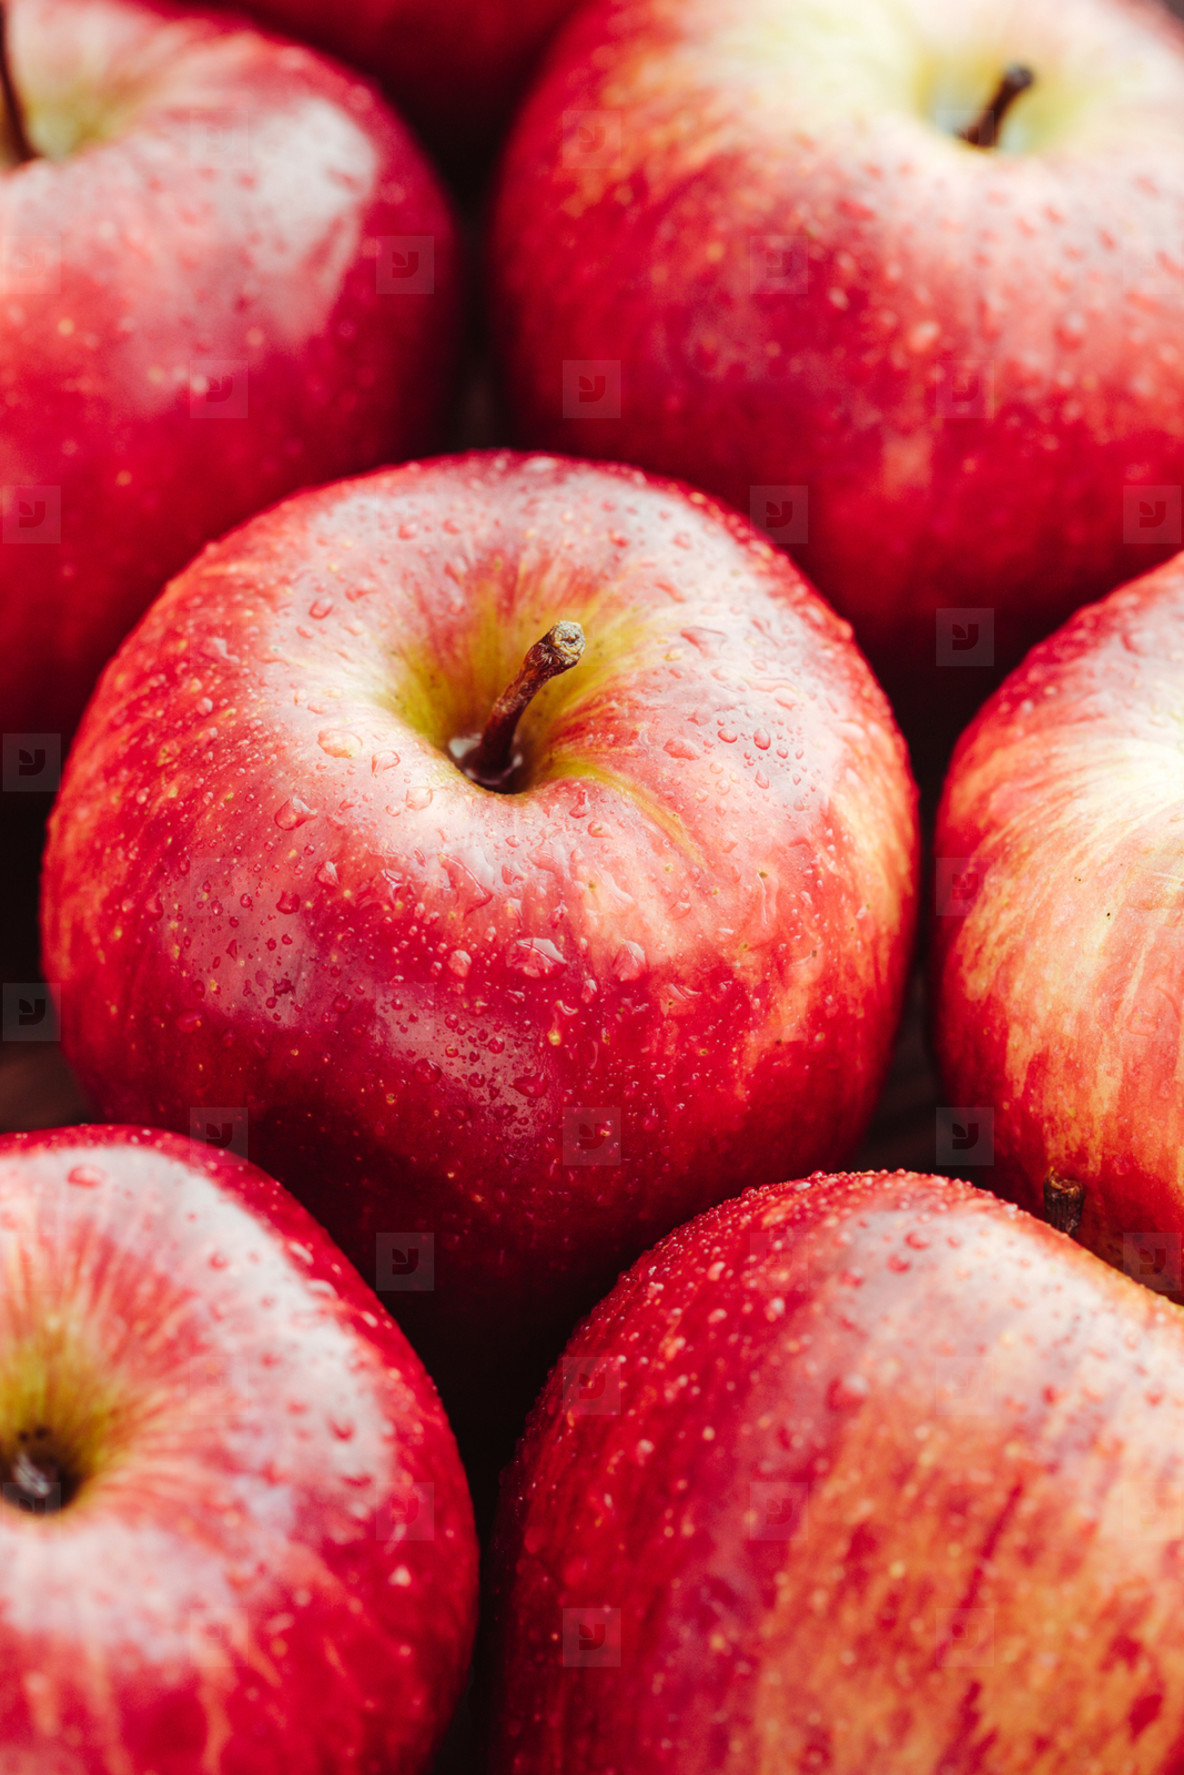 Harvest of ripe apples variety Red Delicious  Food background  macro photography